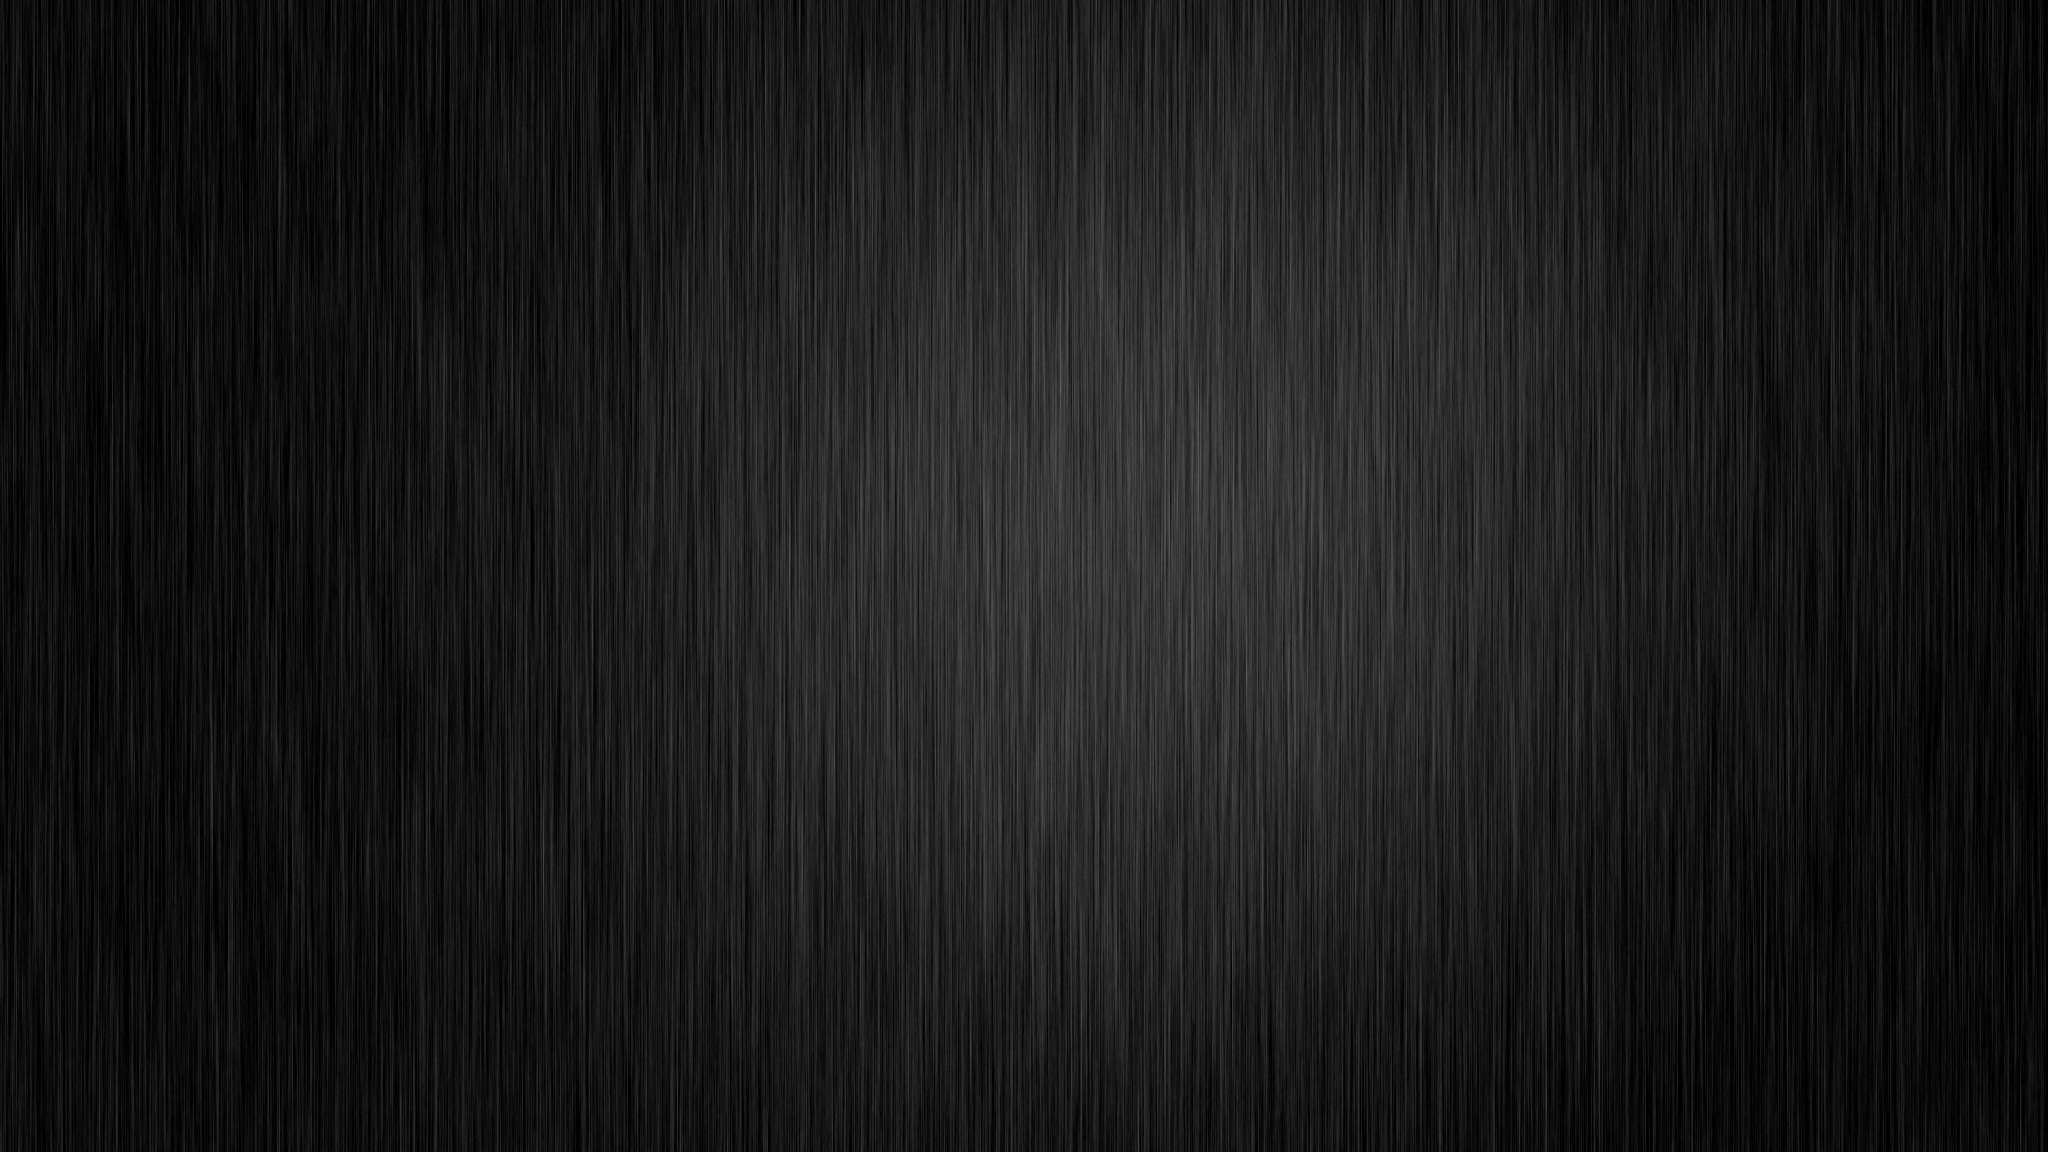 Download Wallpaper 2048x1152 Black Background Lines Scratches HD HD 2048x1152